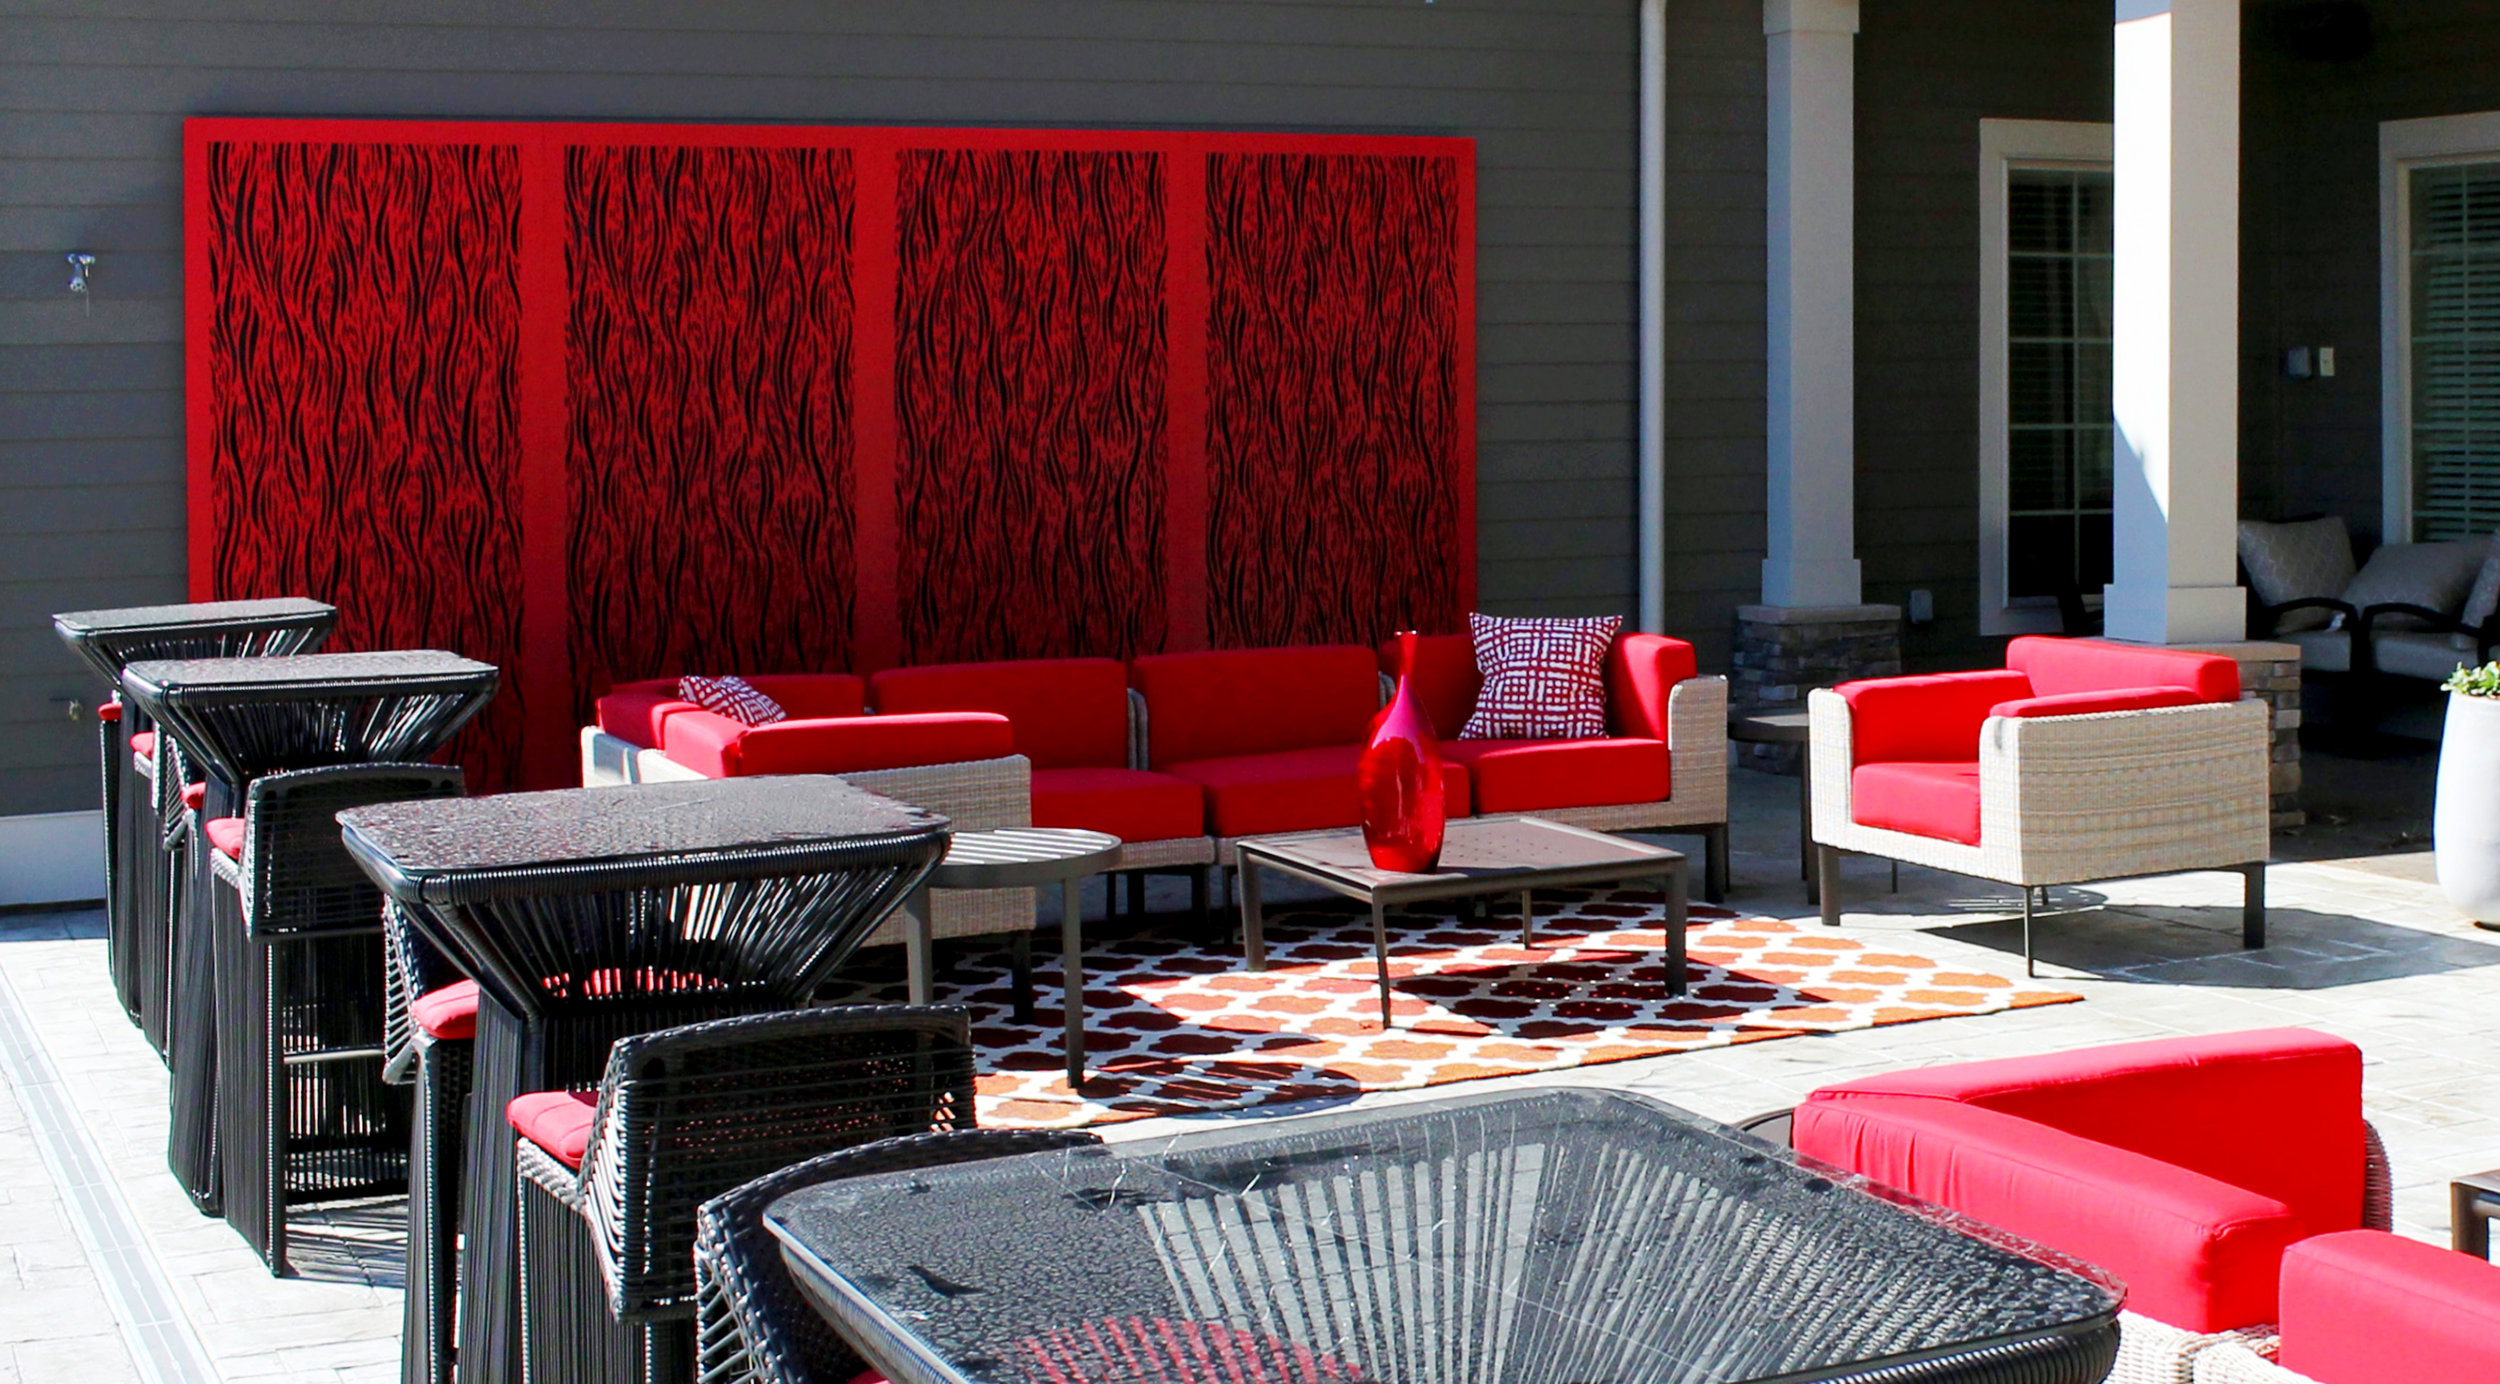 Waterfall, red painted panels - room divider